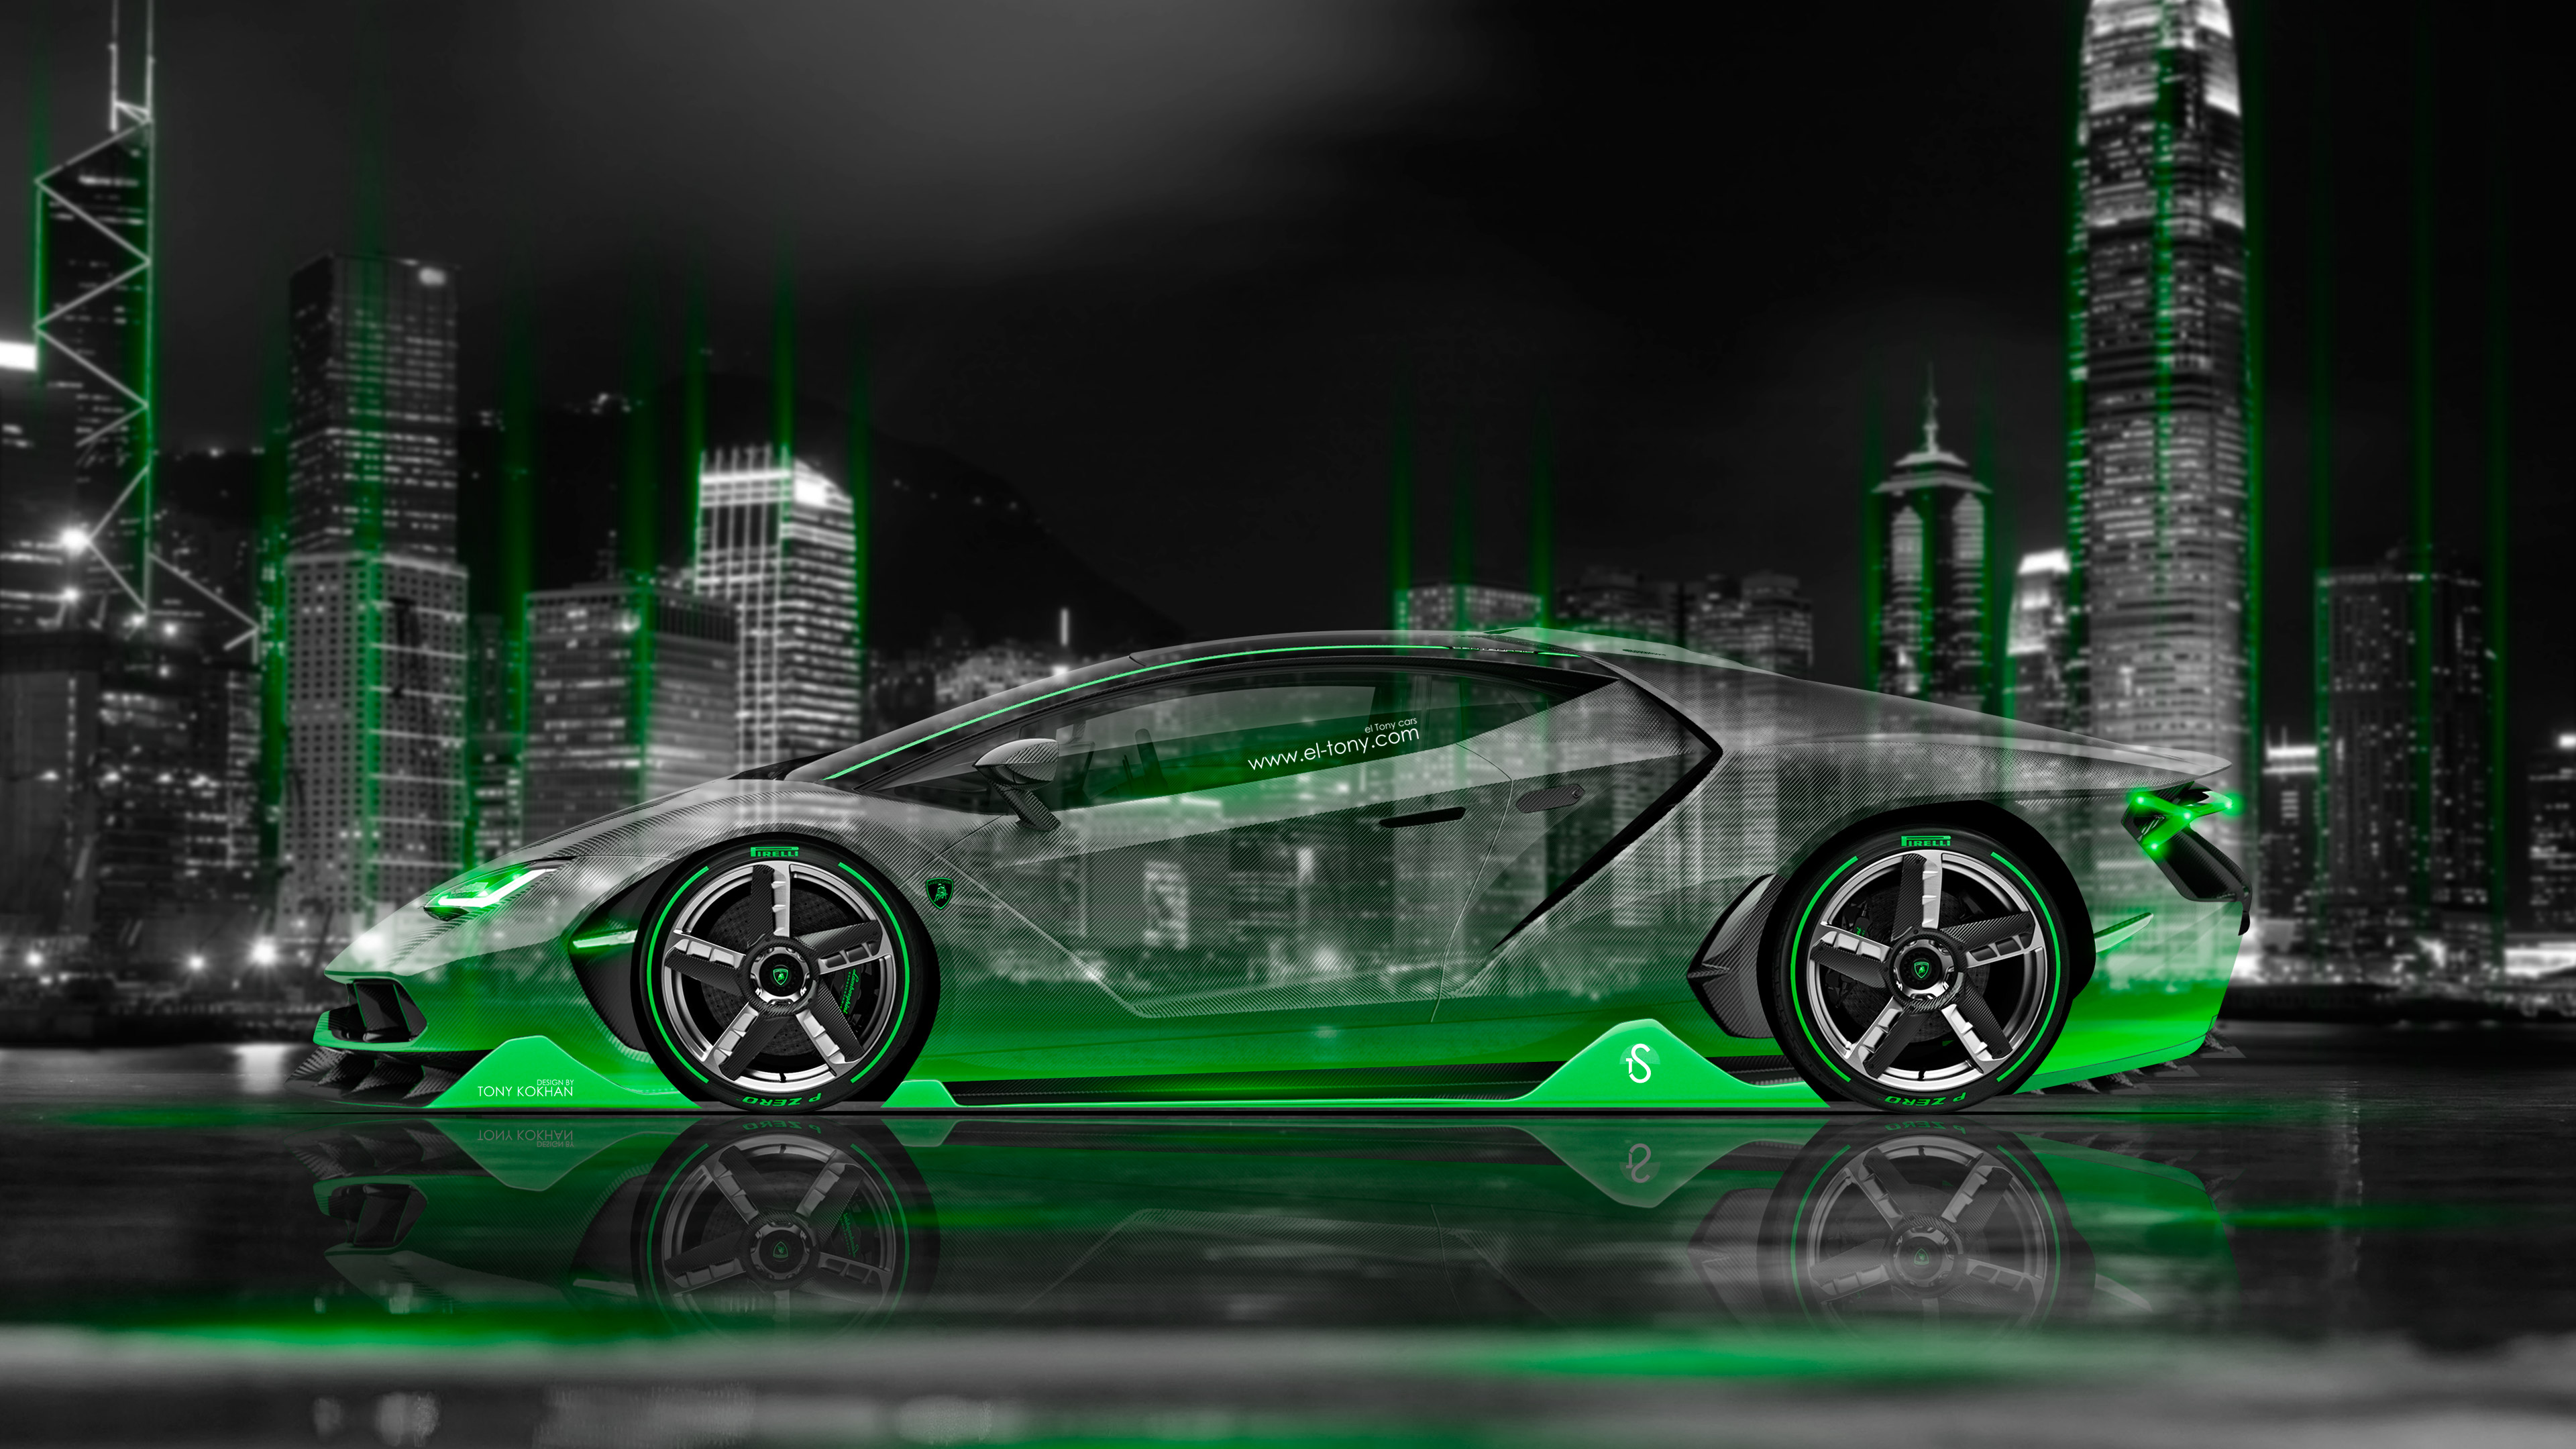 Good Wallpaper Night Lamborghini - Lamborghini-Centenario-Side-Crystal-City-Night-Car-2016-Green-Neon-Colors-4K-Wallpapers-design-by-Tony-Kokhan-www  Graphic-3847.jpg